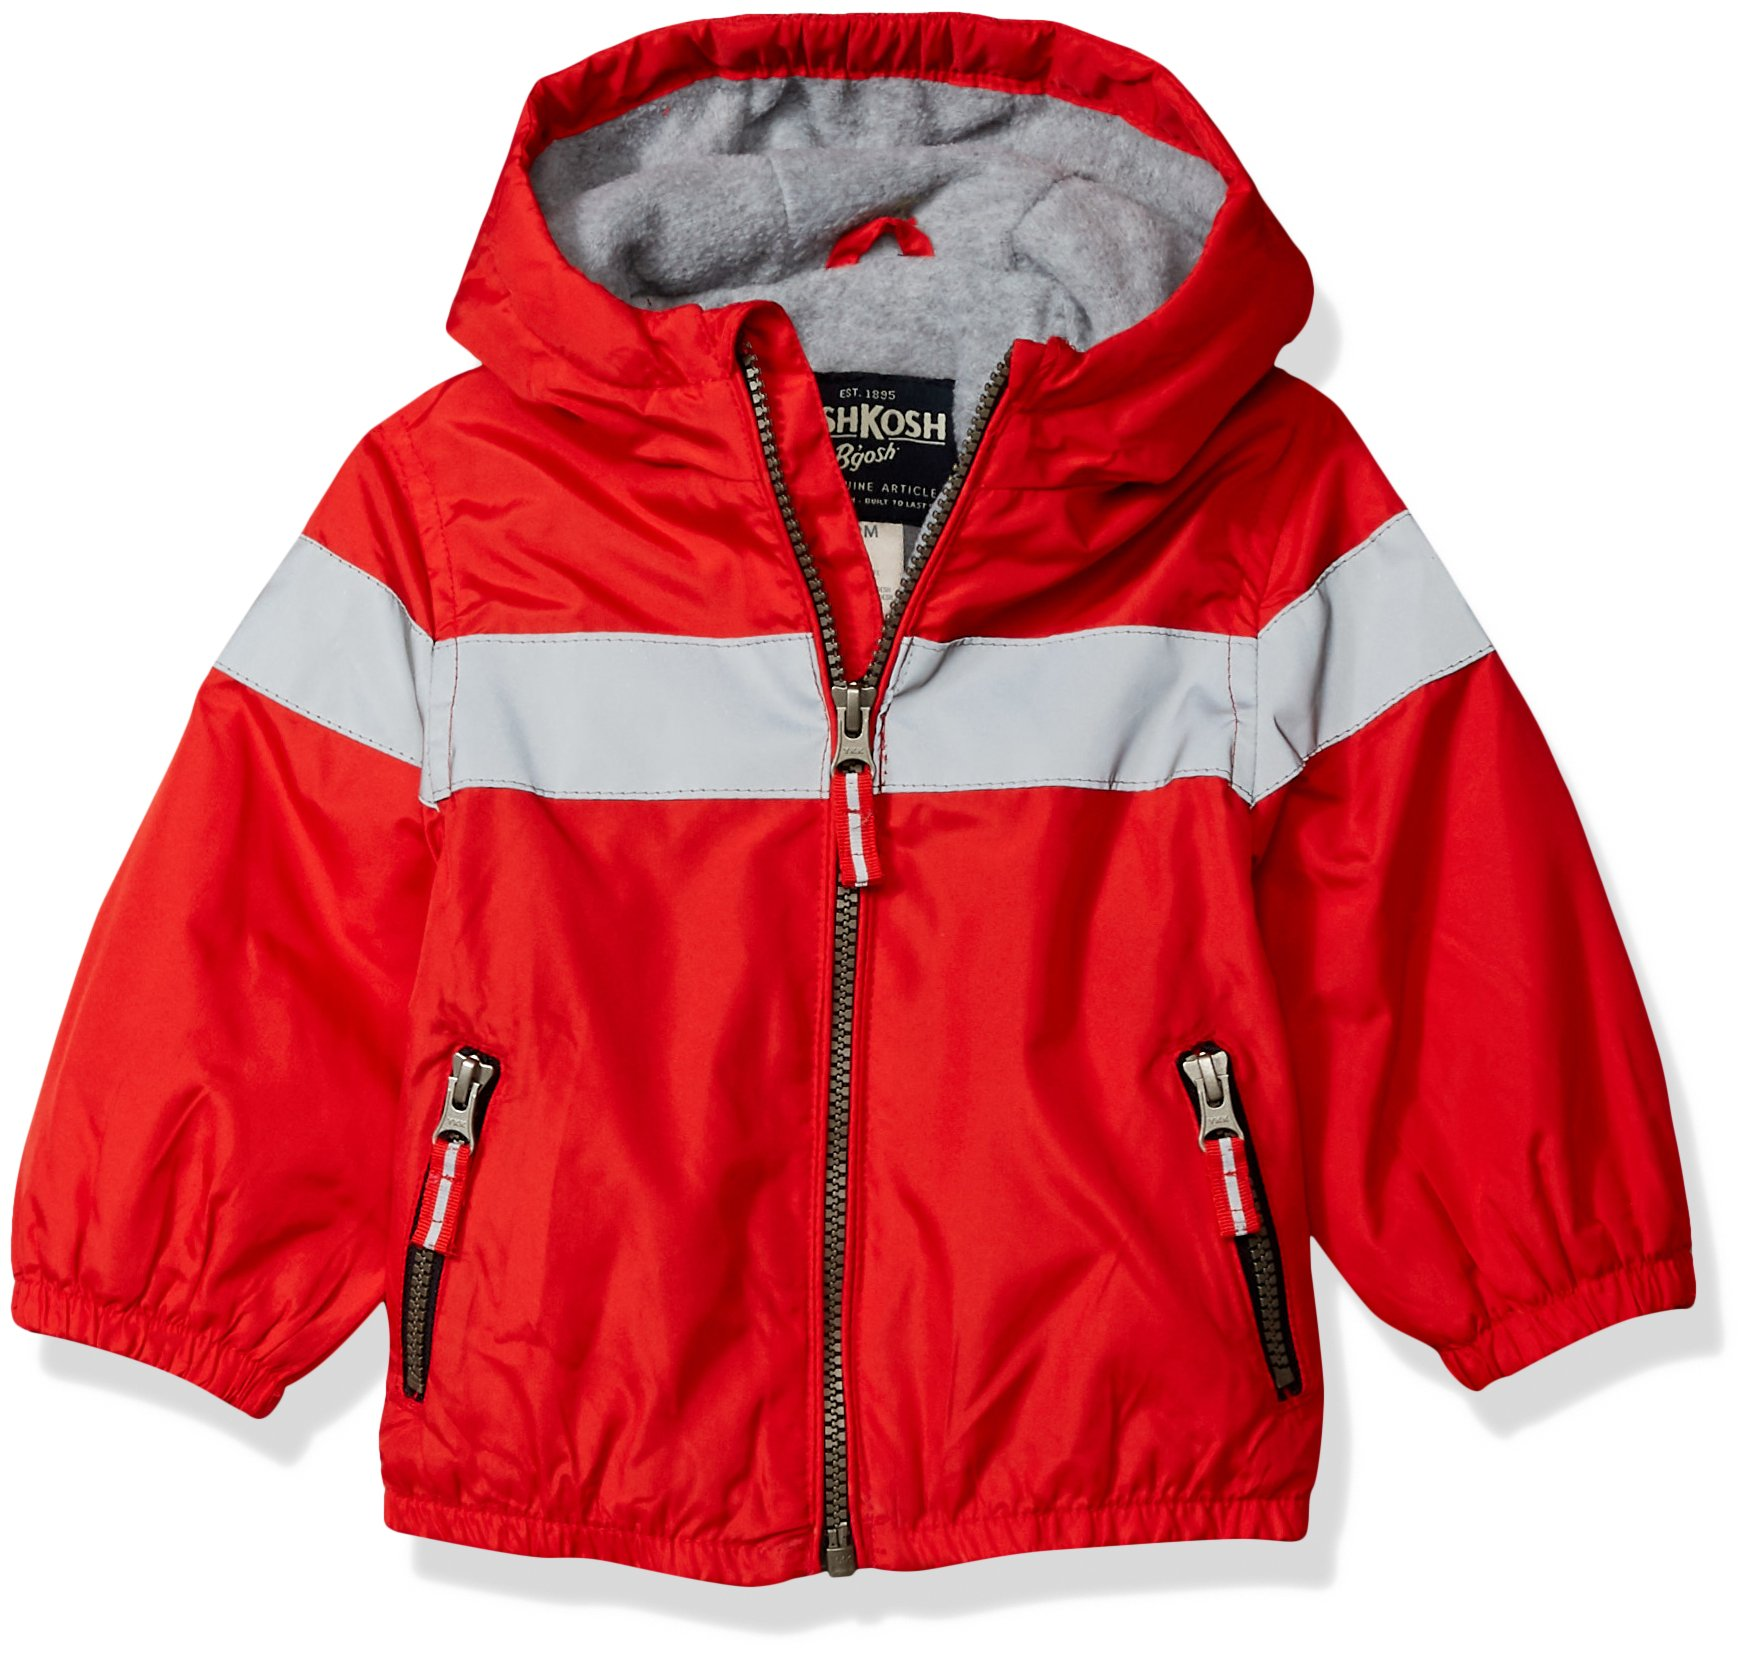 Osh Kosh Baby Boys Midweight Active Fleece Lined Jacket, red, 12M by OshKosh B'Gosh